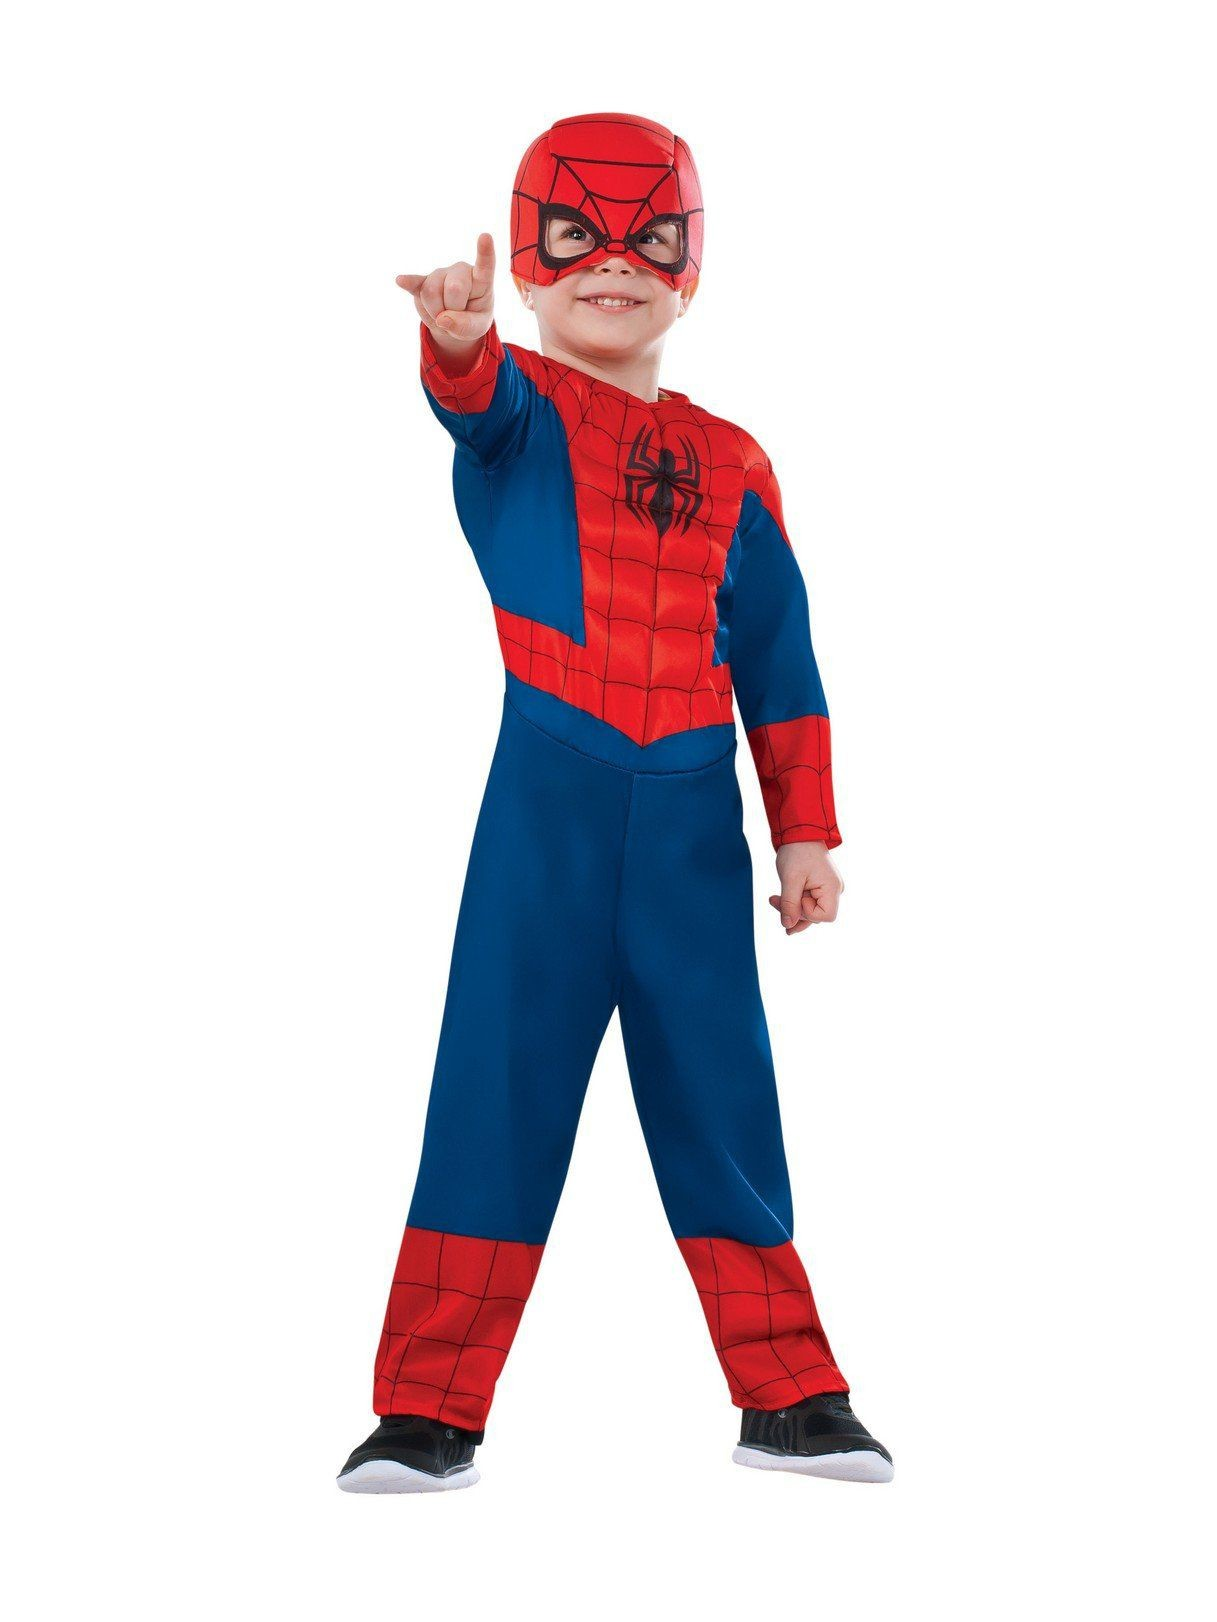 Spiderman Costume For Halloween R620009-TODD